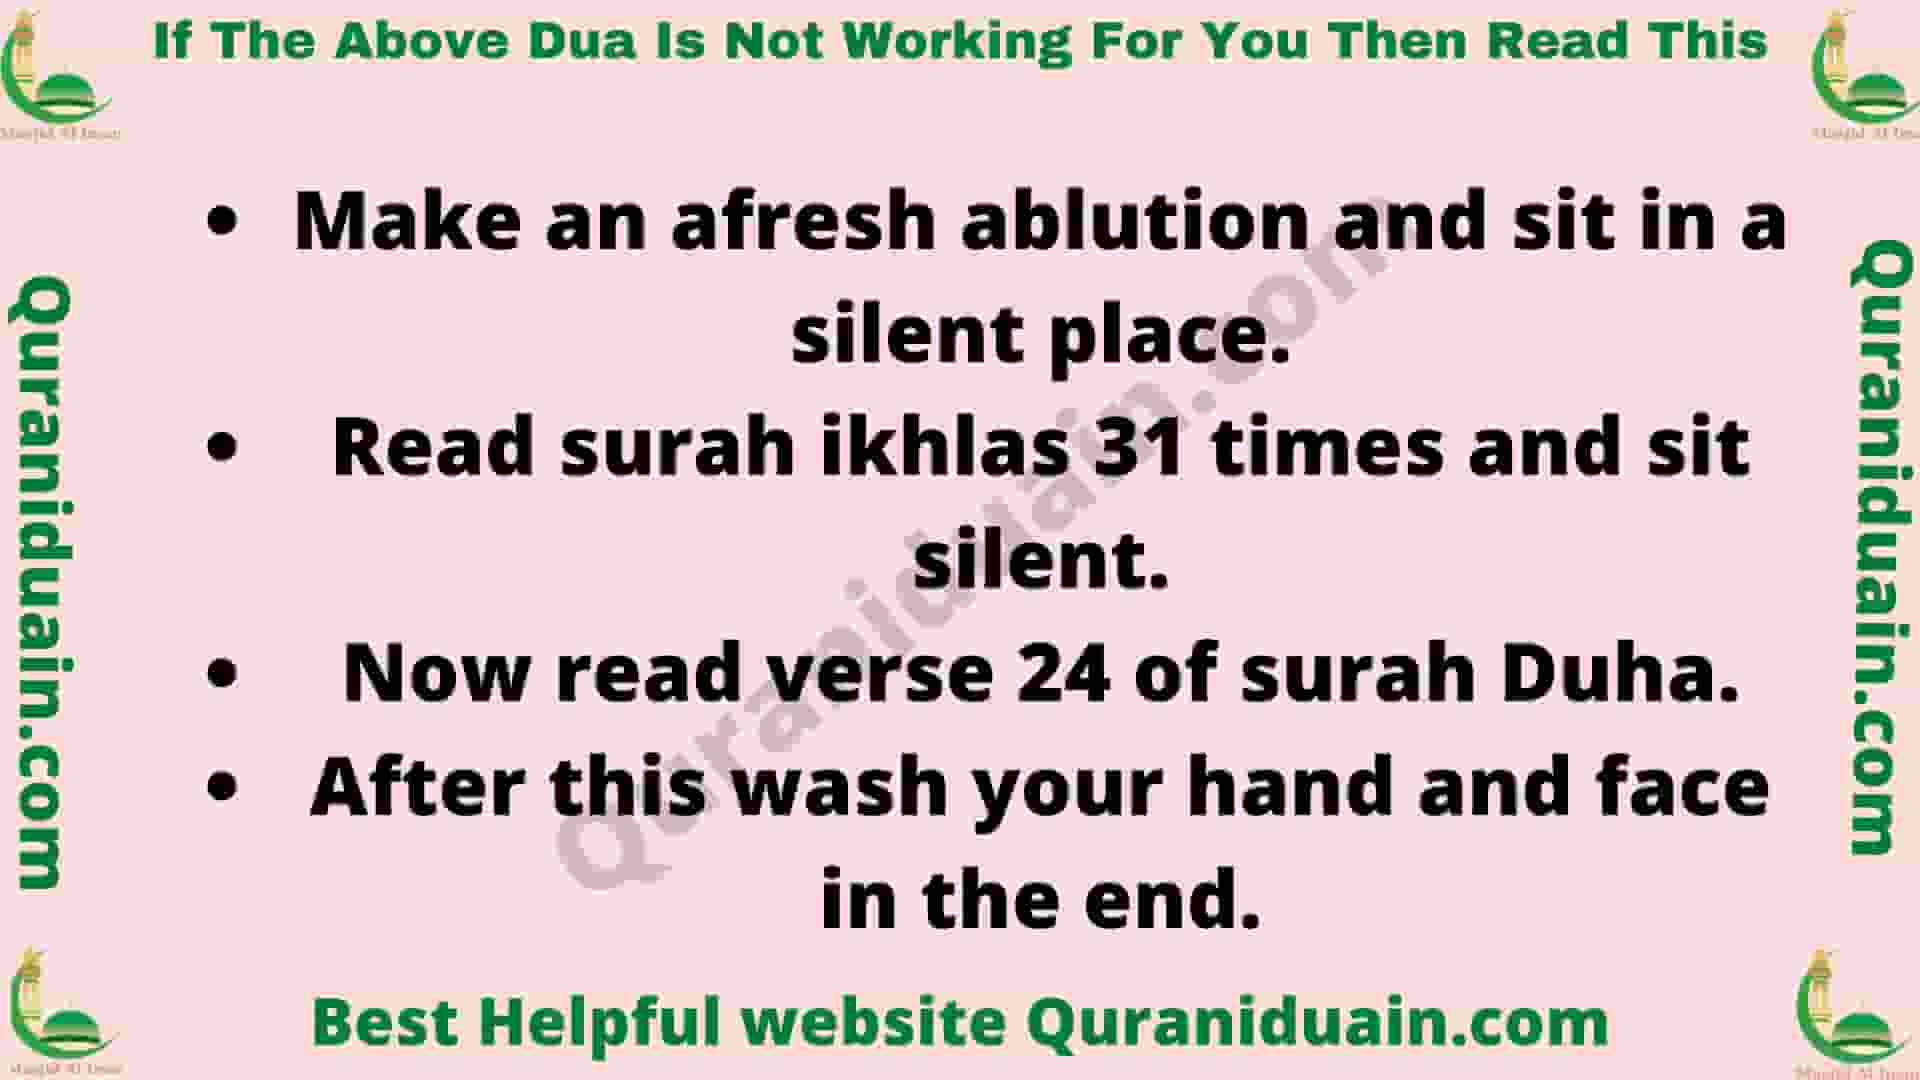 If The Above Dua Is Not Working For You Then Read This